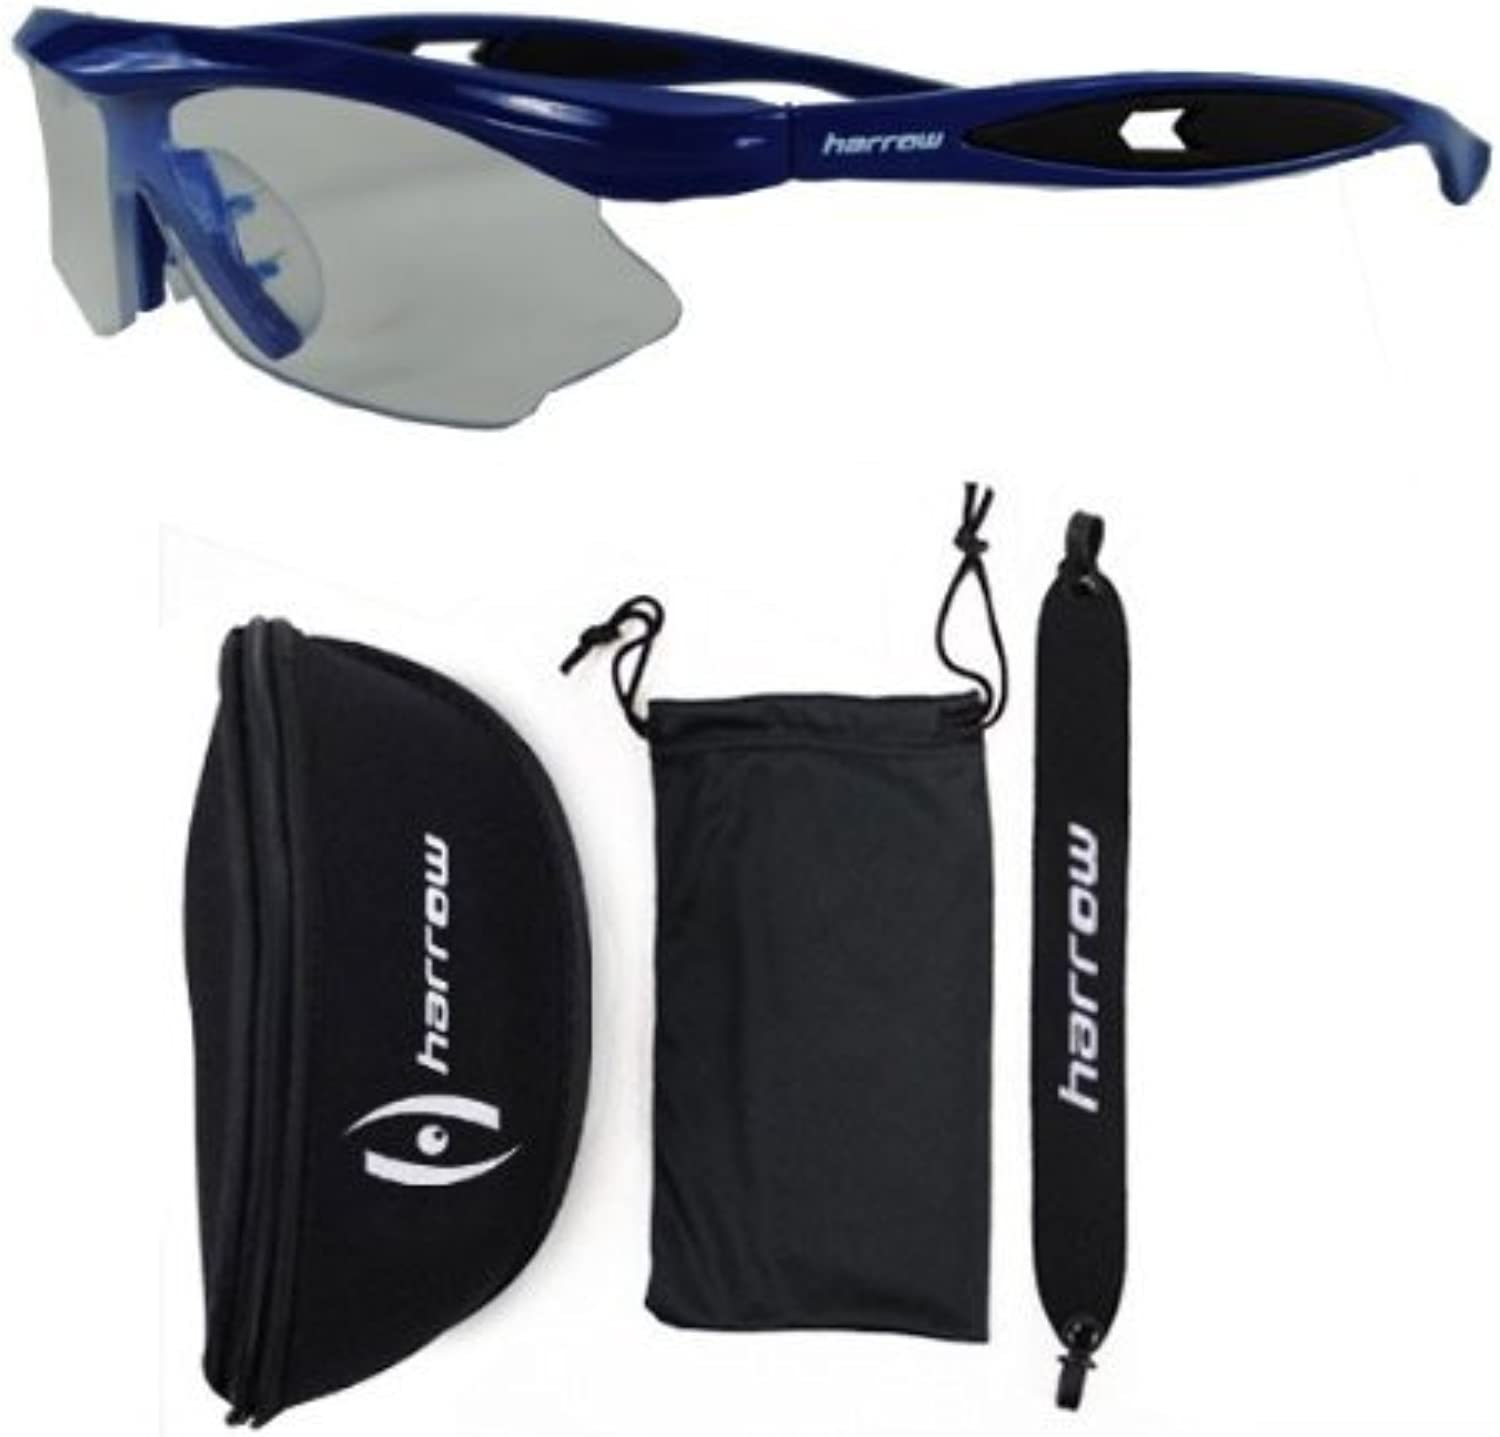 Harrow Radar Junior Squash Eyewear